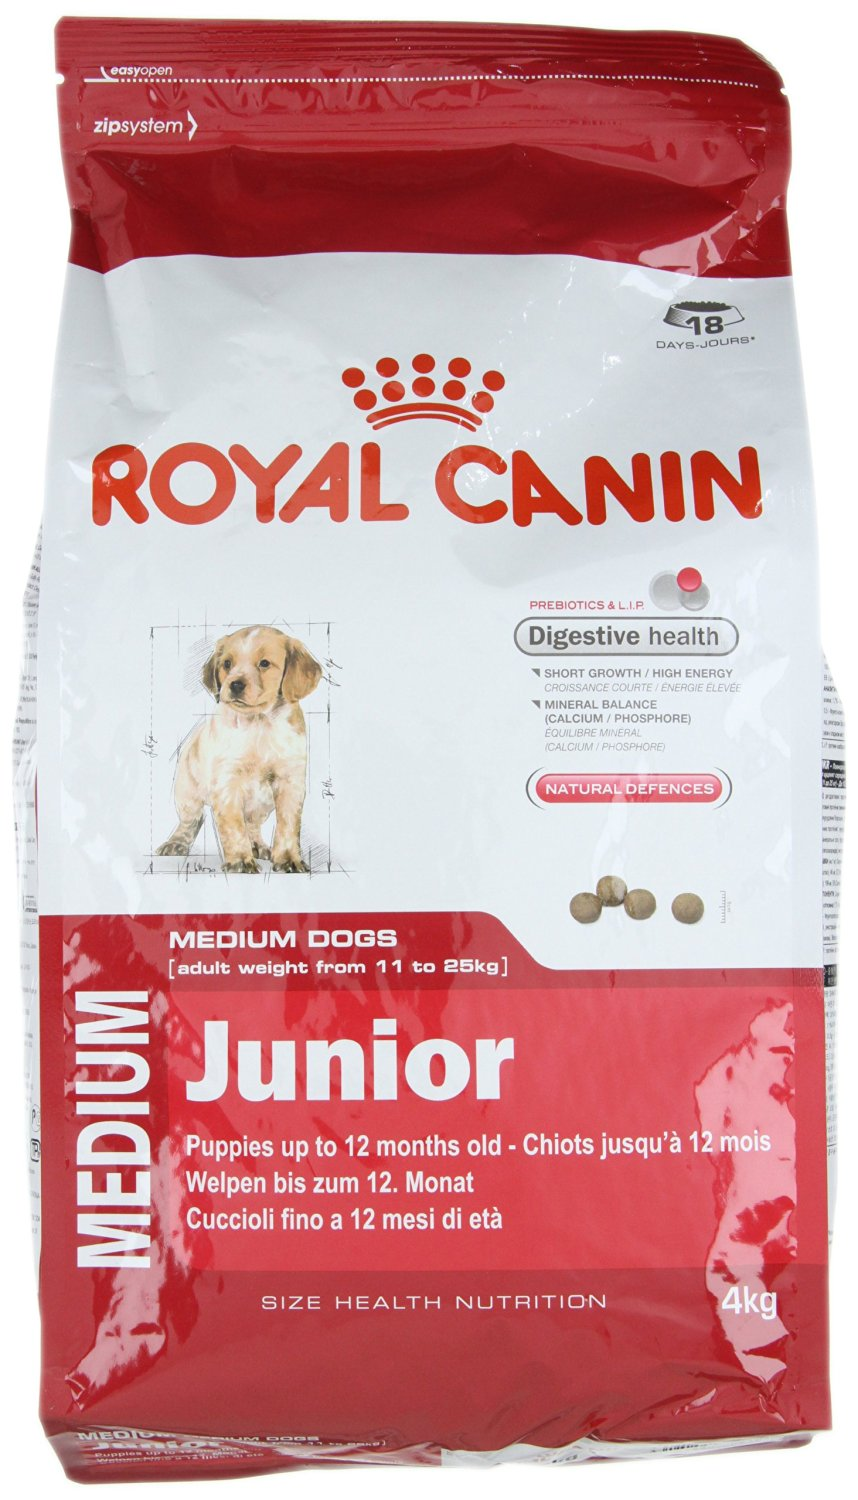 Top 517 Reviews and Complaints about Royal Canin Pet Foods